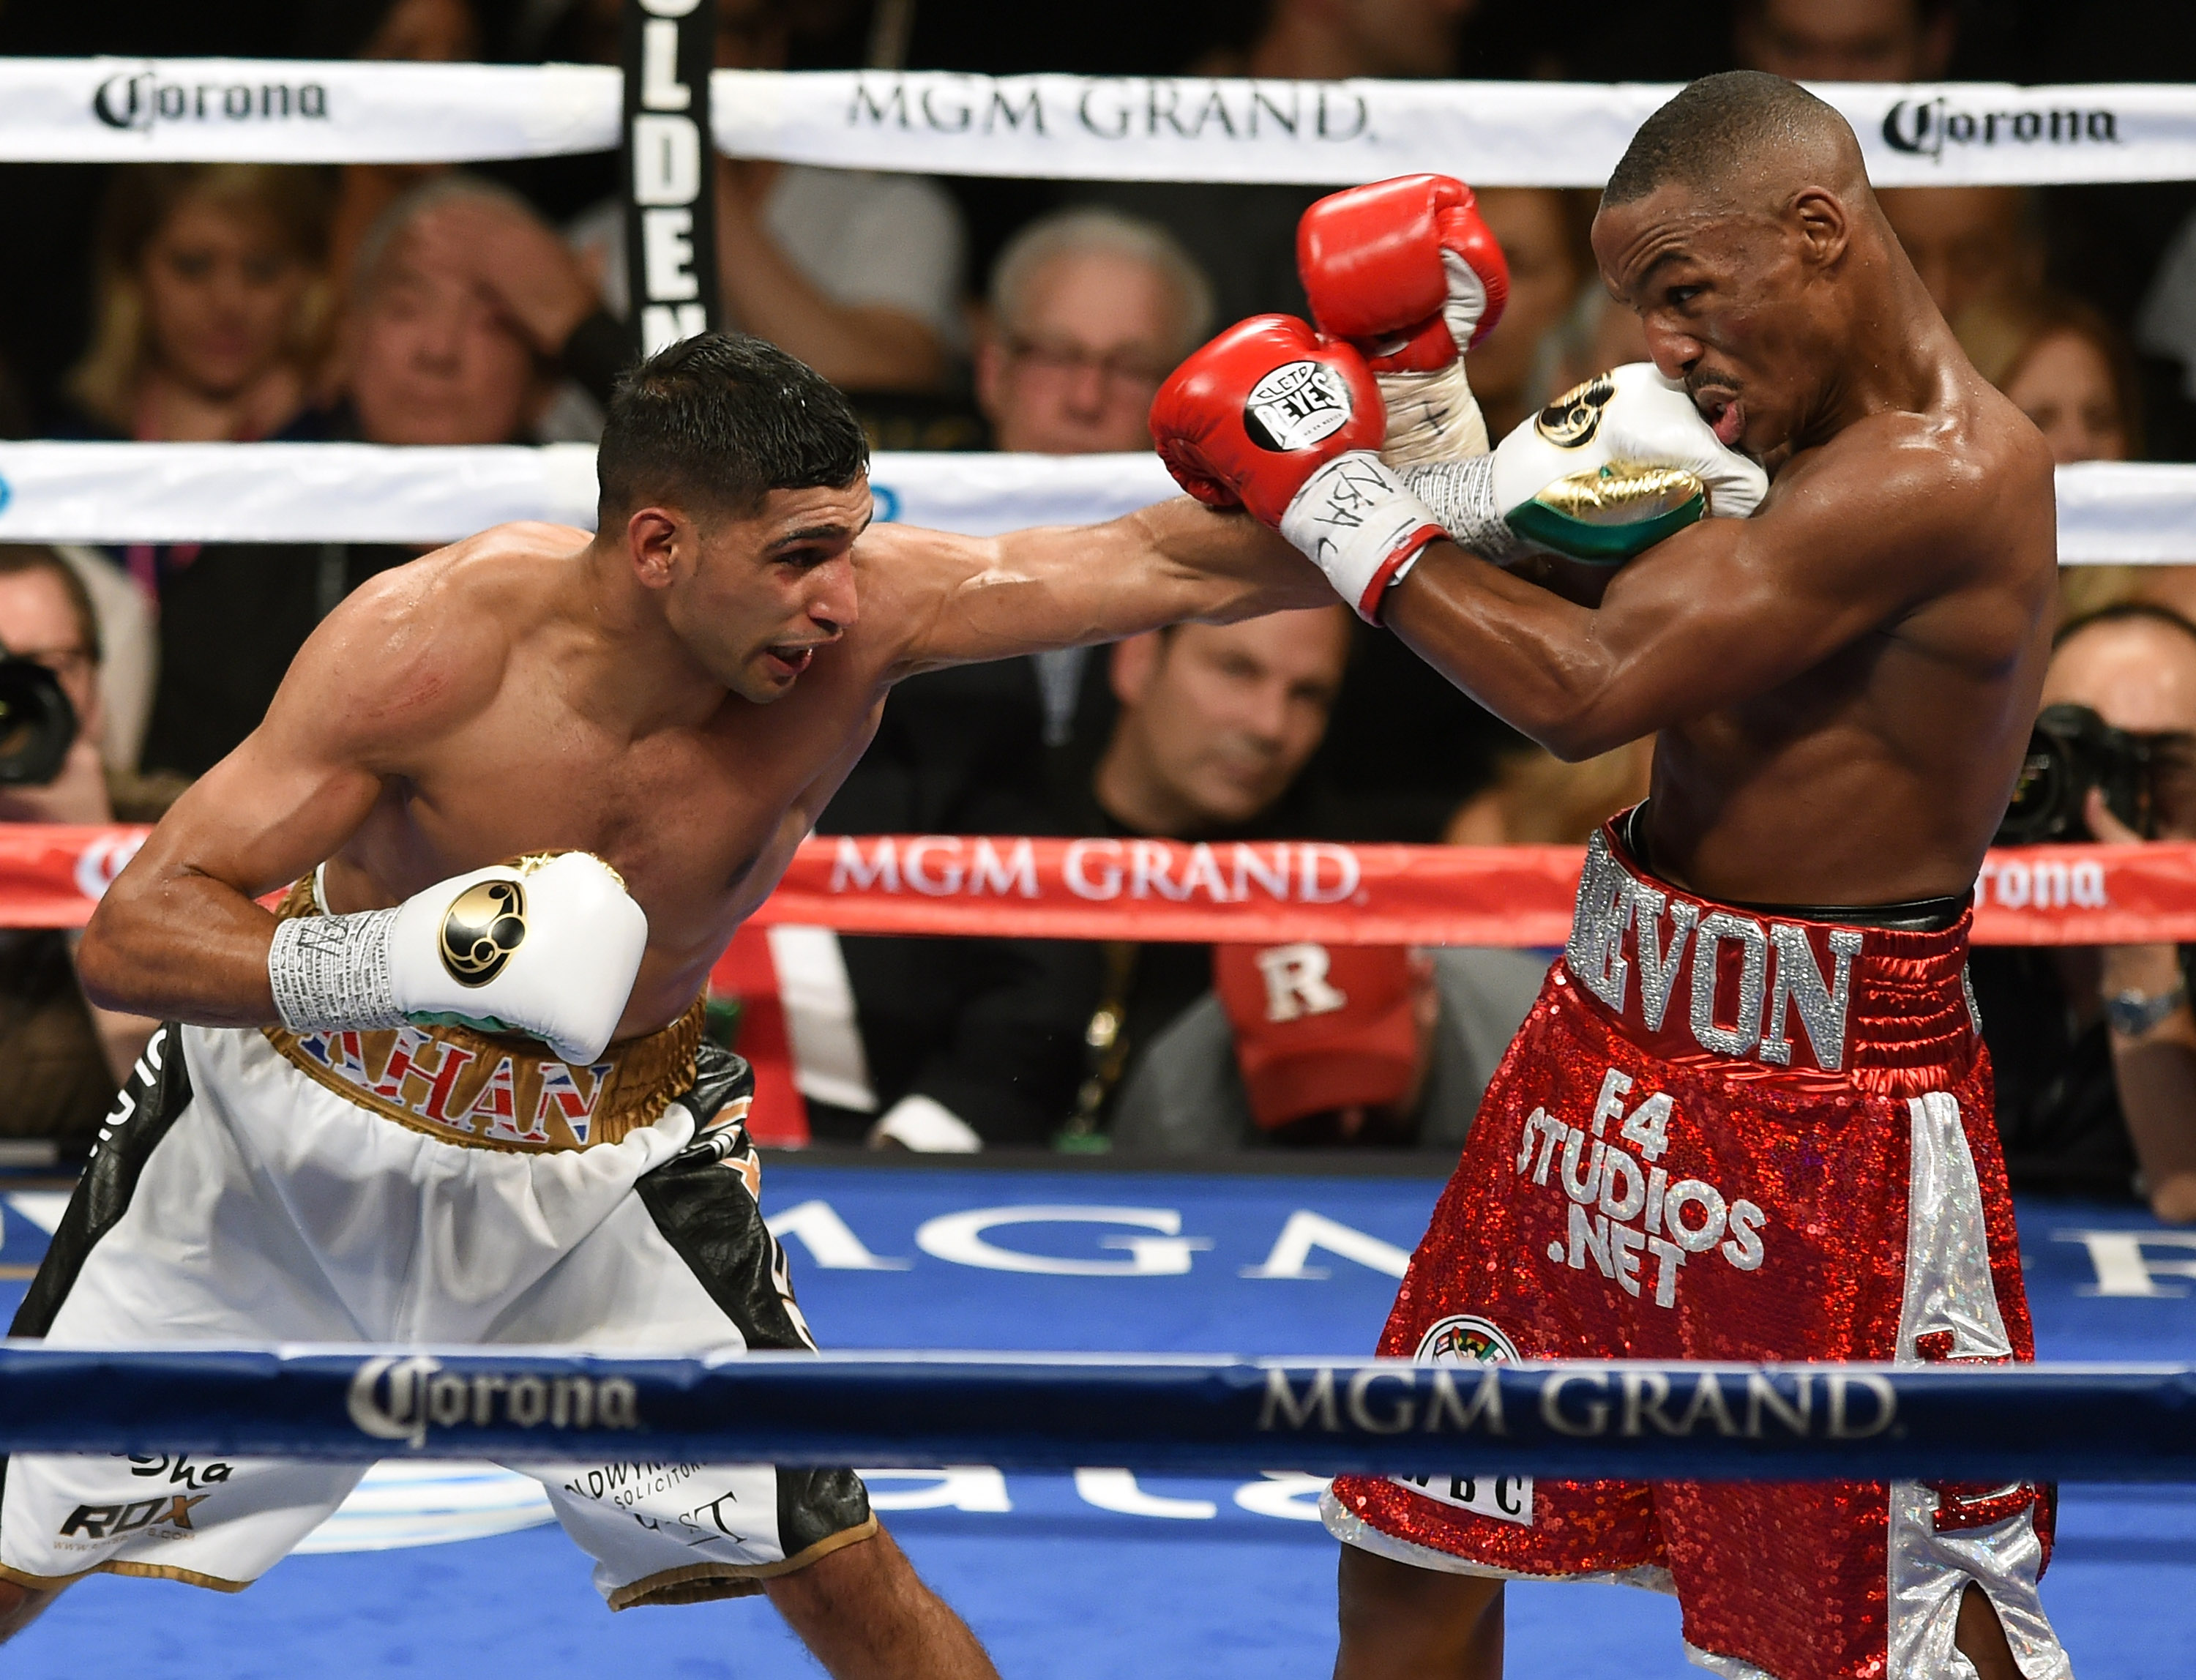 Amir Khan smashes Devon Alexander in the fifth round of their welterweight bout at the MGM Grand Garden Arena on December 13, 2014. (Getty)